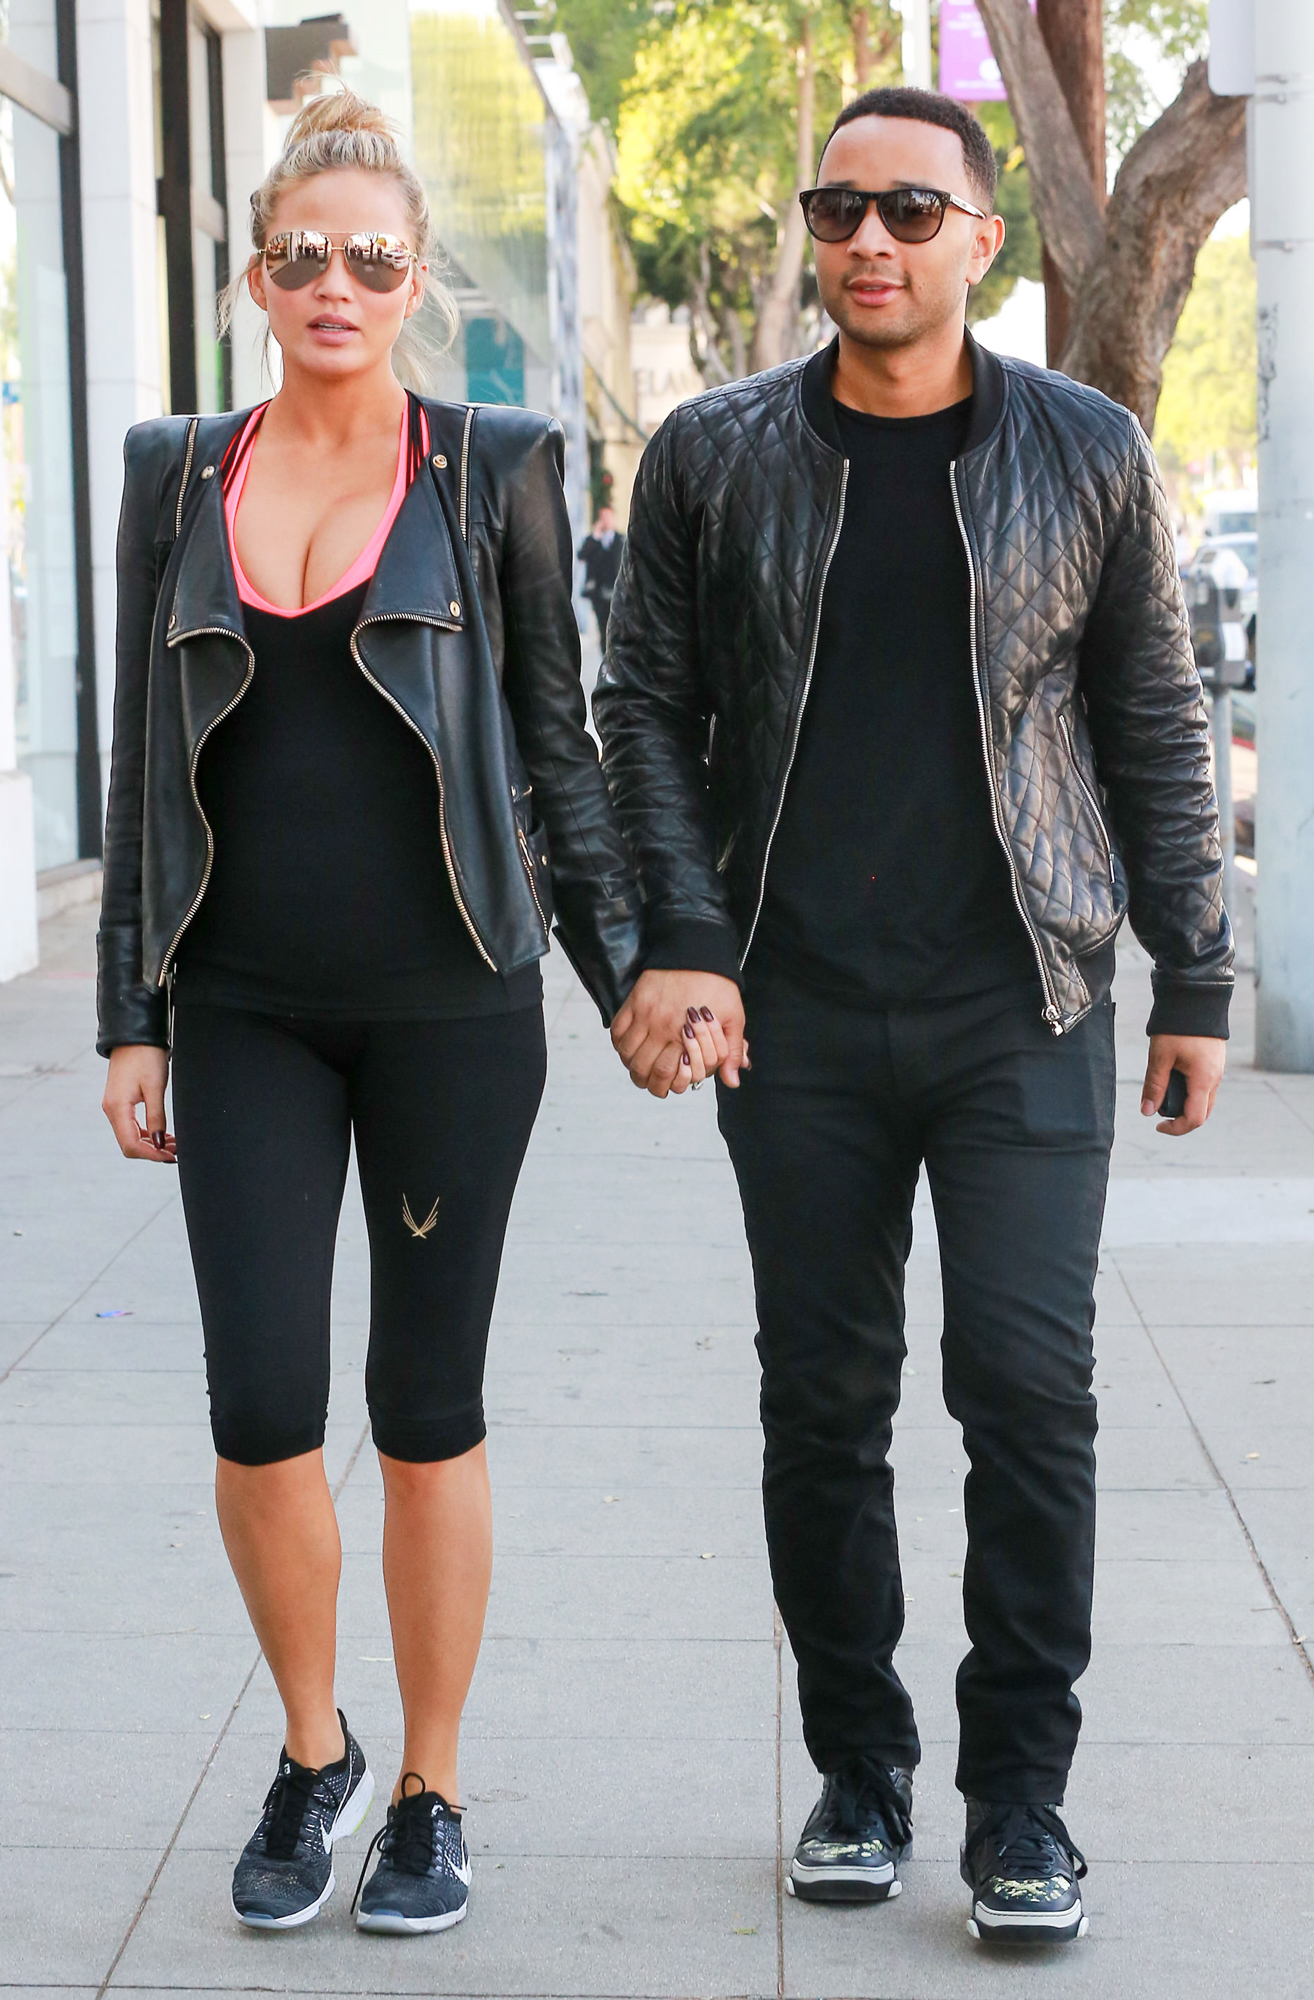 Chrissy Teigen and John Legend are seen on December 04, 2015 in Los Angeles, California.